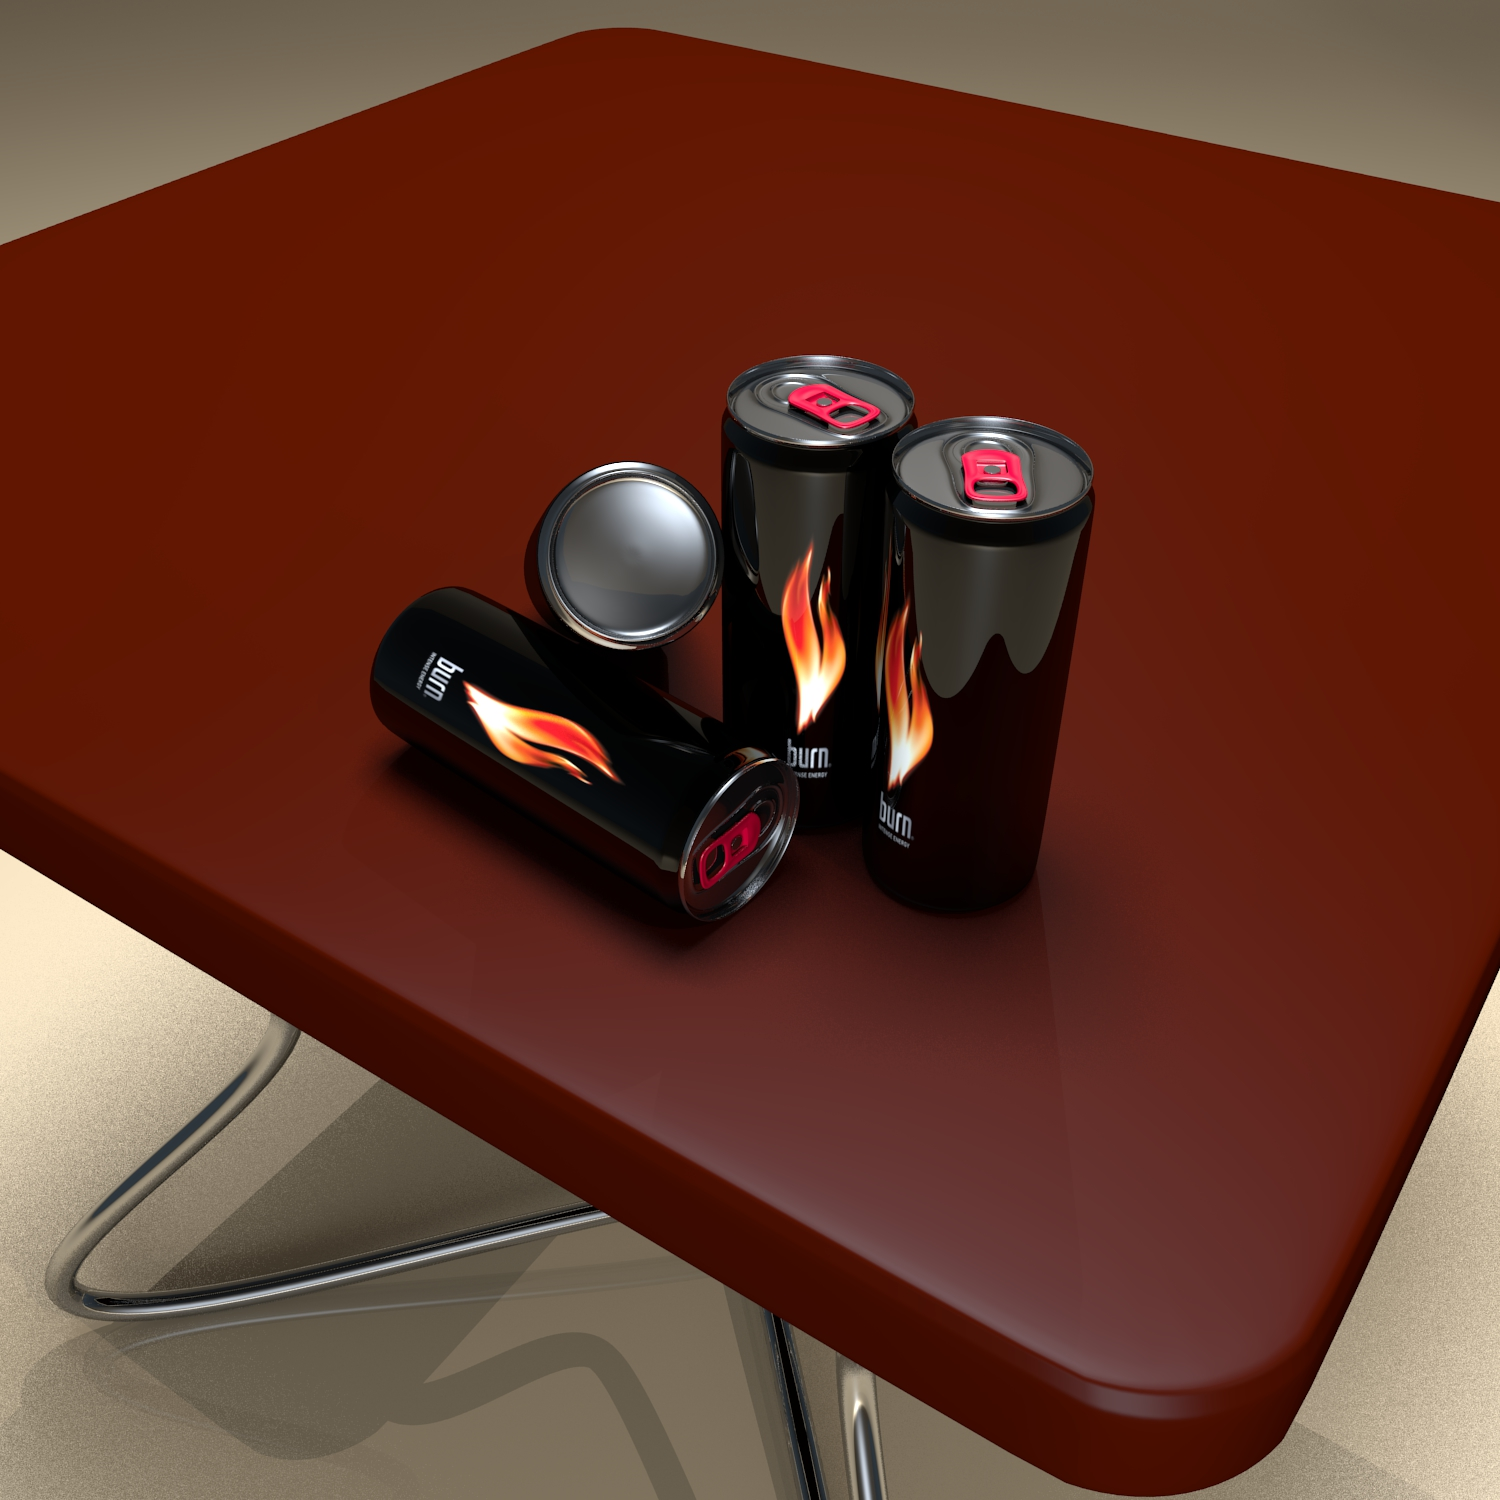 energy drink burn 3d model blend obj 119299